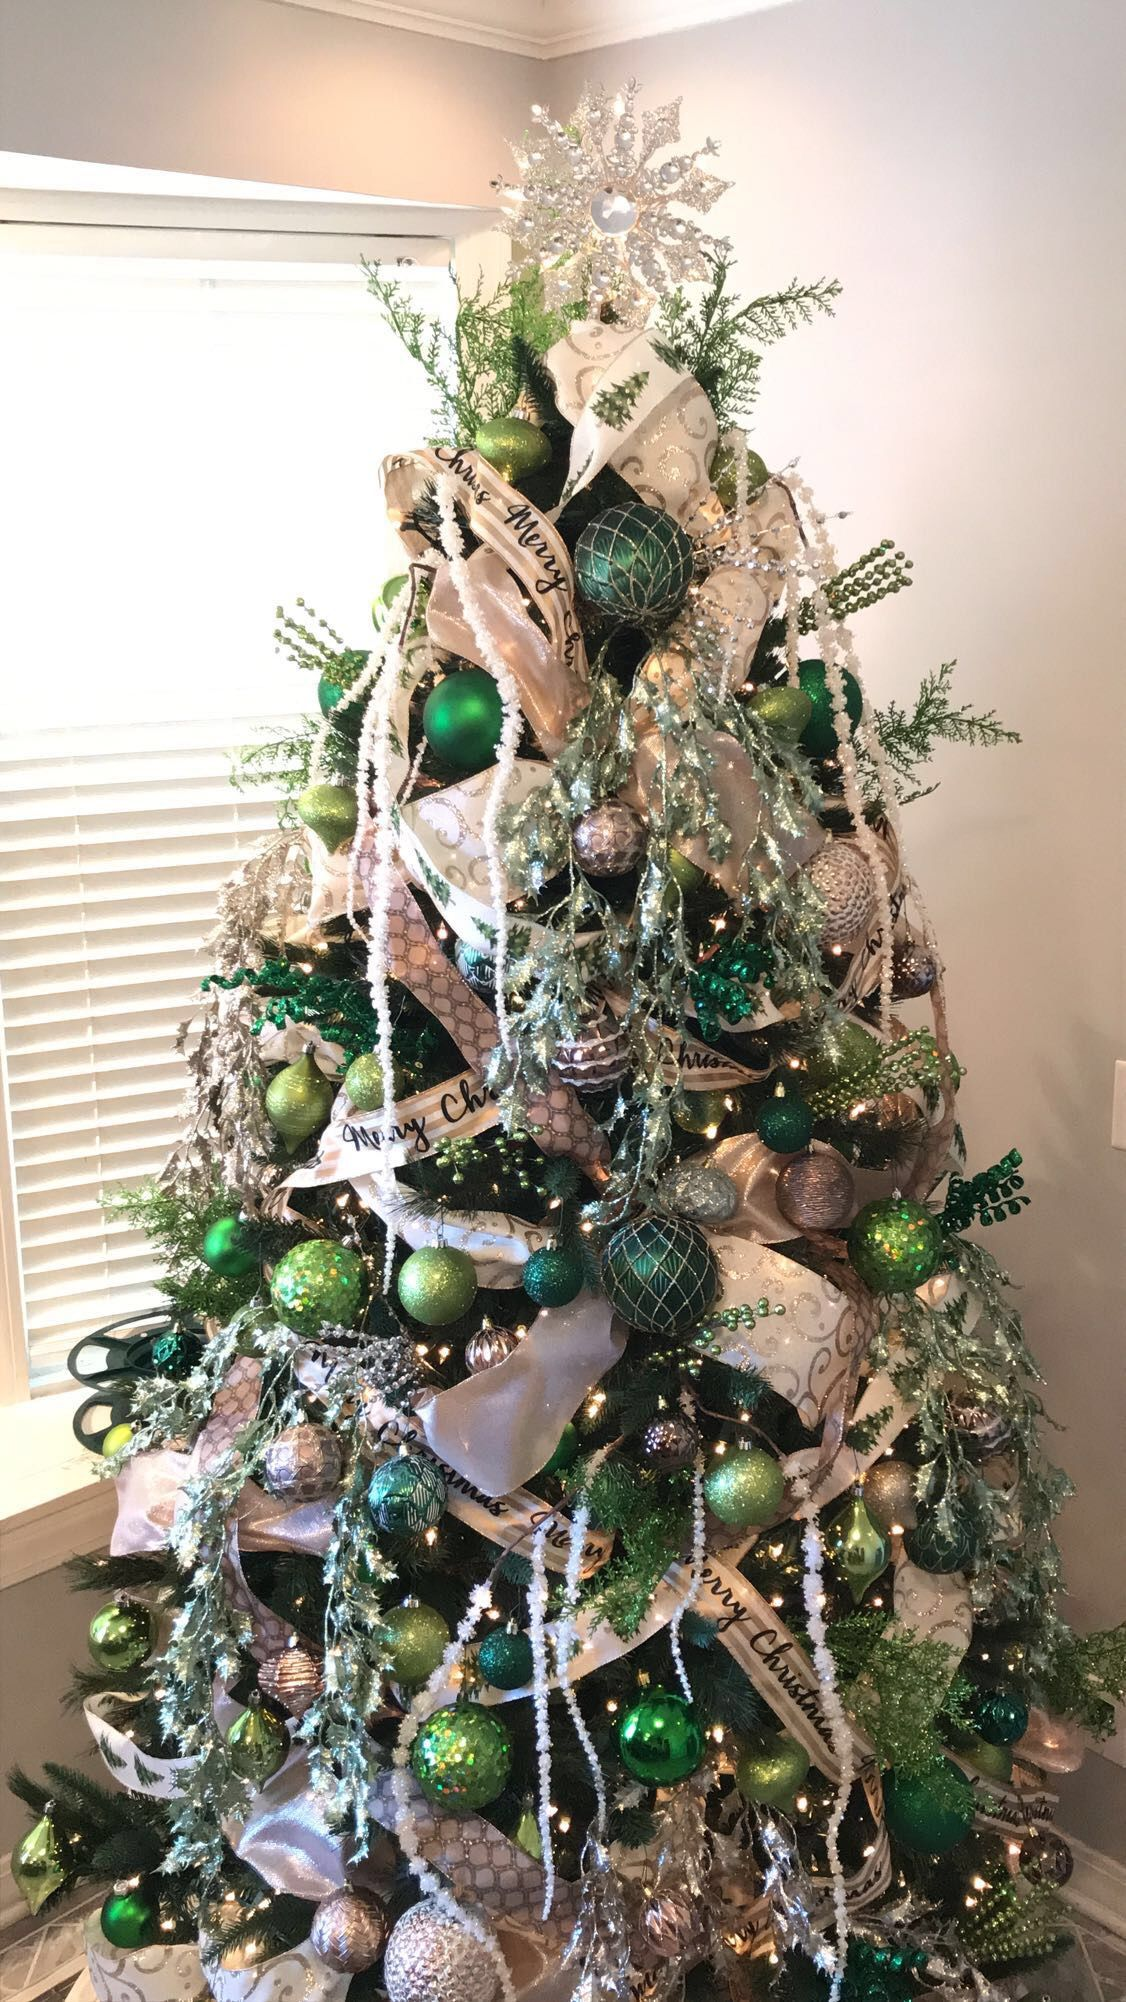 2017 Christmas Tree In Gold Emerald Green Silver Bronze White Garland An Green Christmas Tree Decorations Christmas Tree Themes Christmas Tree Decorations